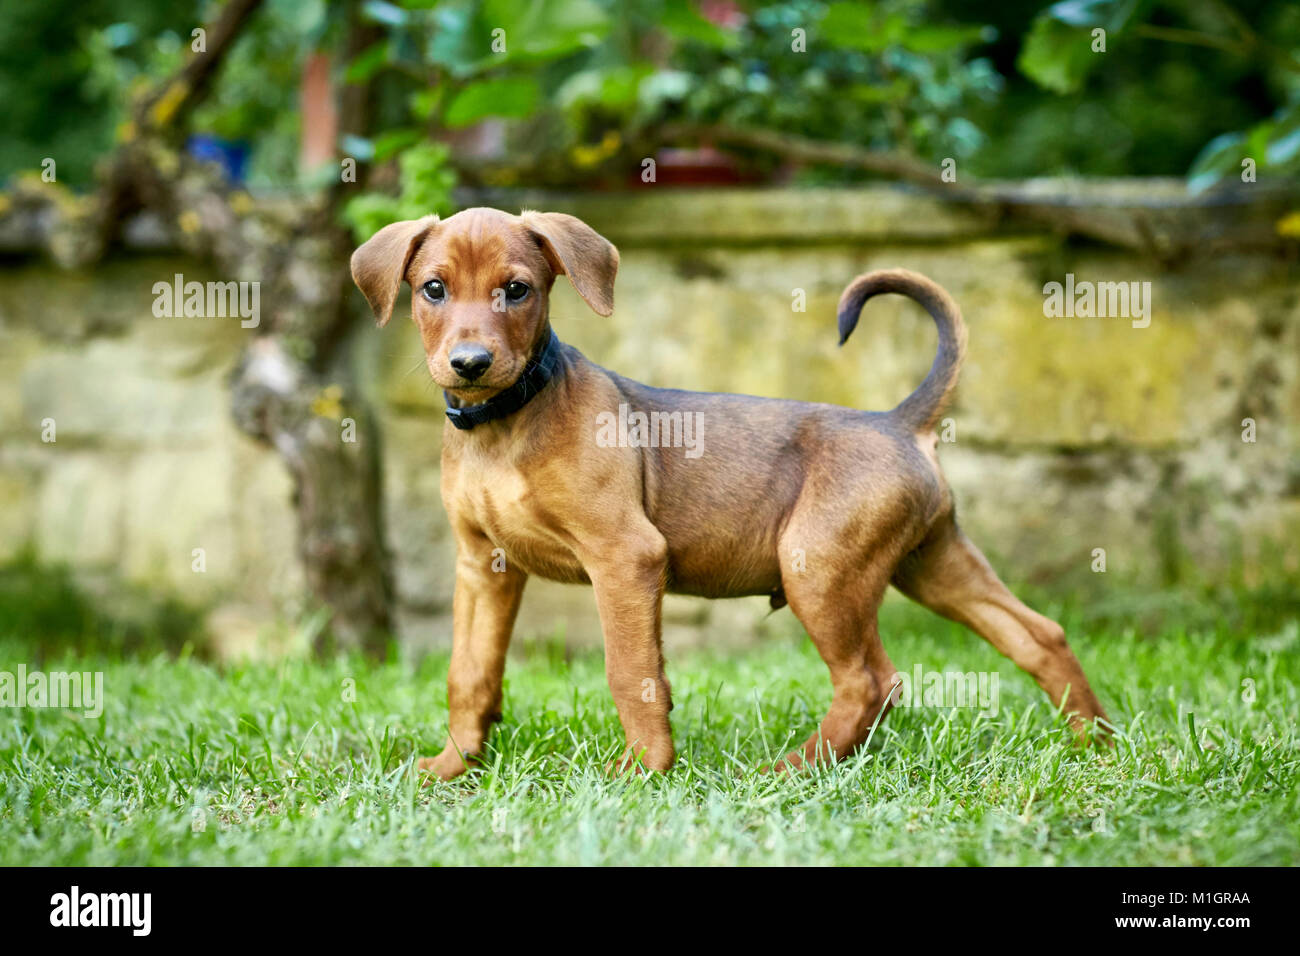 German Pinscher. Puppy standing on a lawn. Germany. - Stock Image